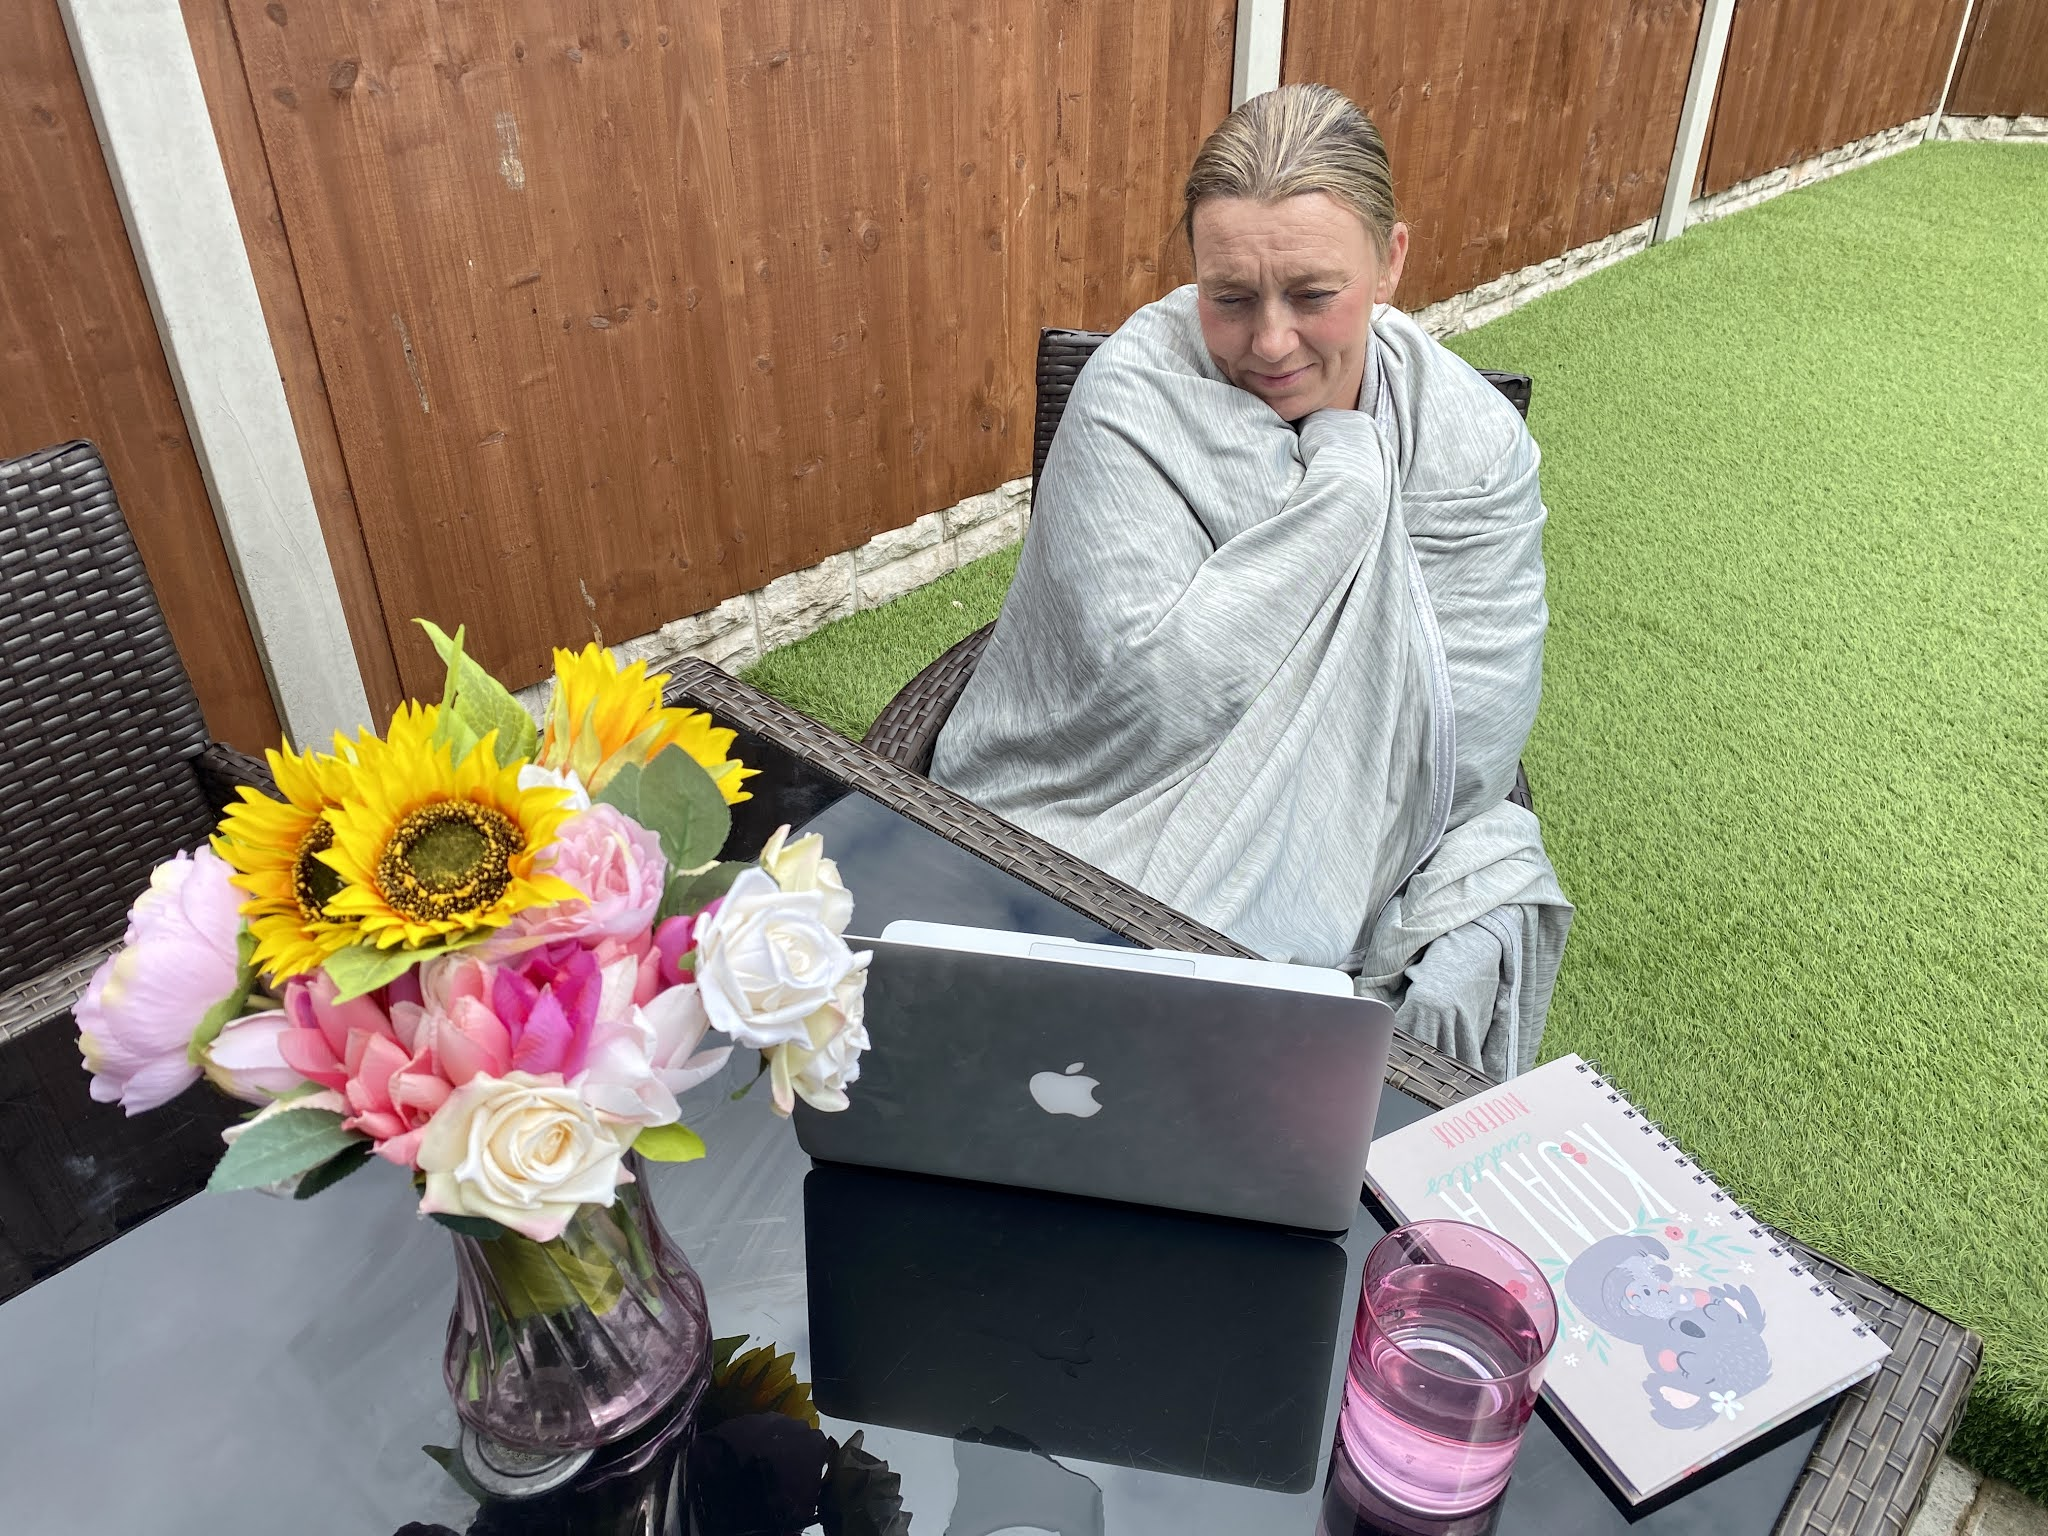 woman in the garden with a blanket around her